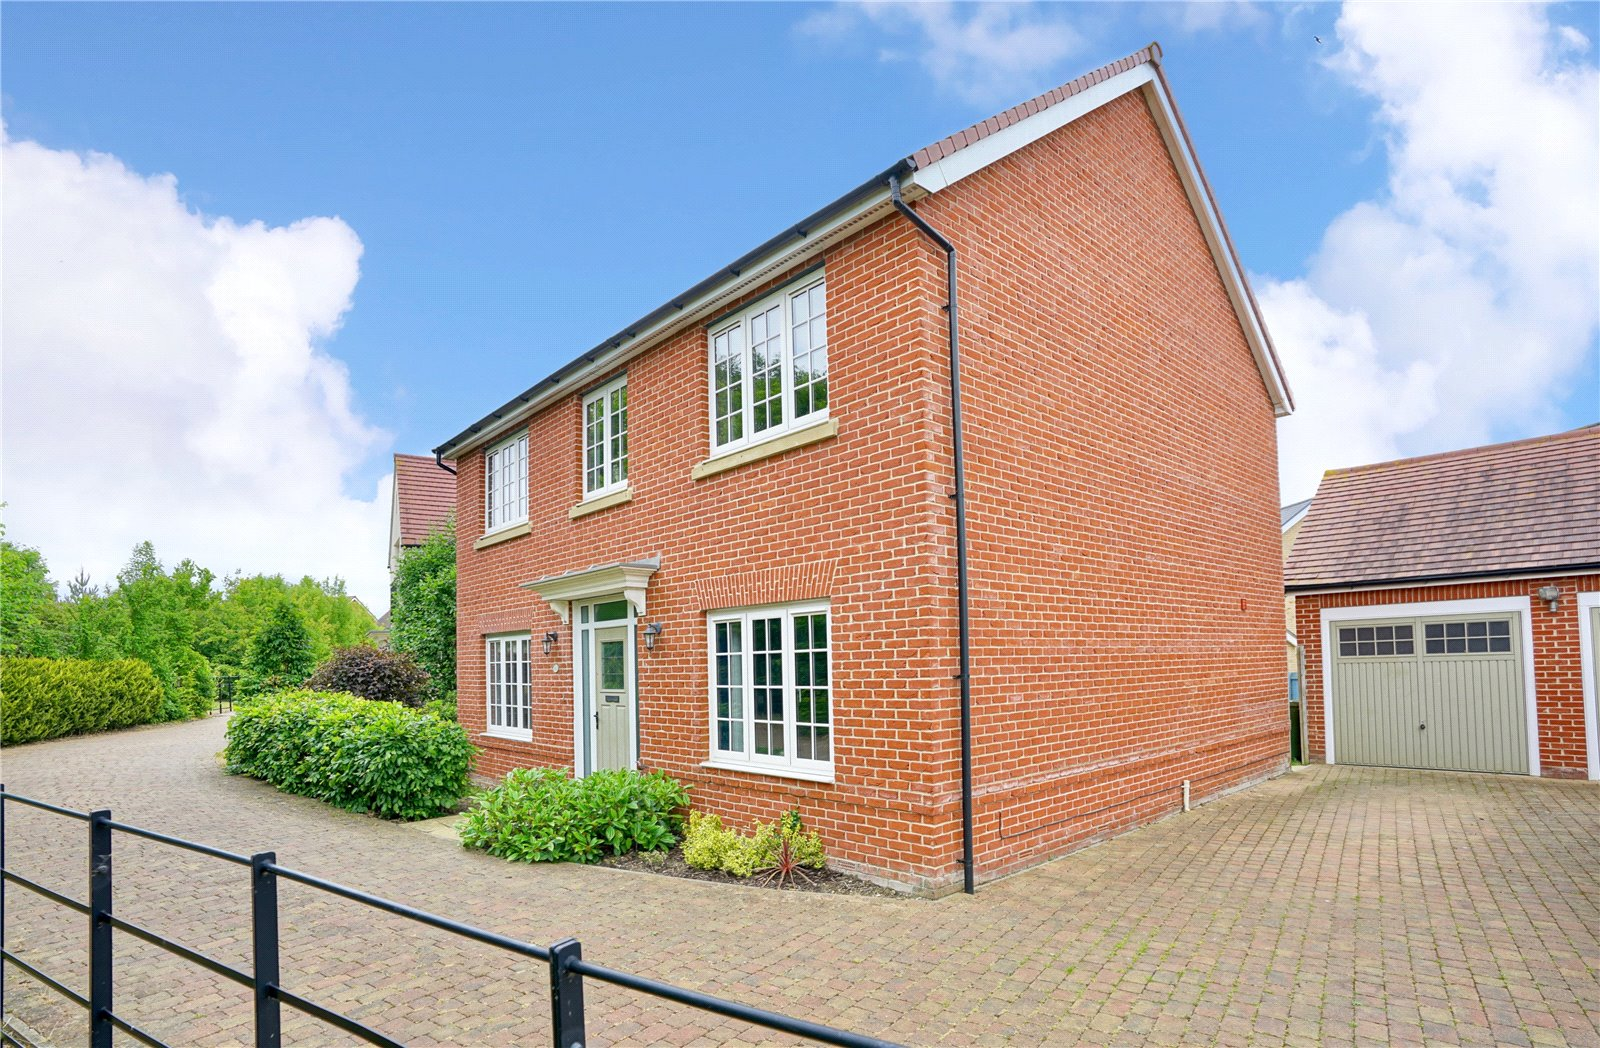 4 bed house for sale in Field Gate Close, St. Neots, PE19